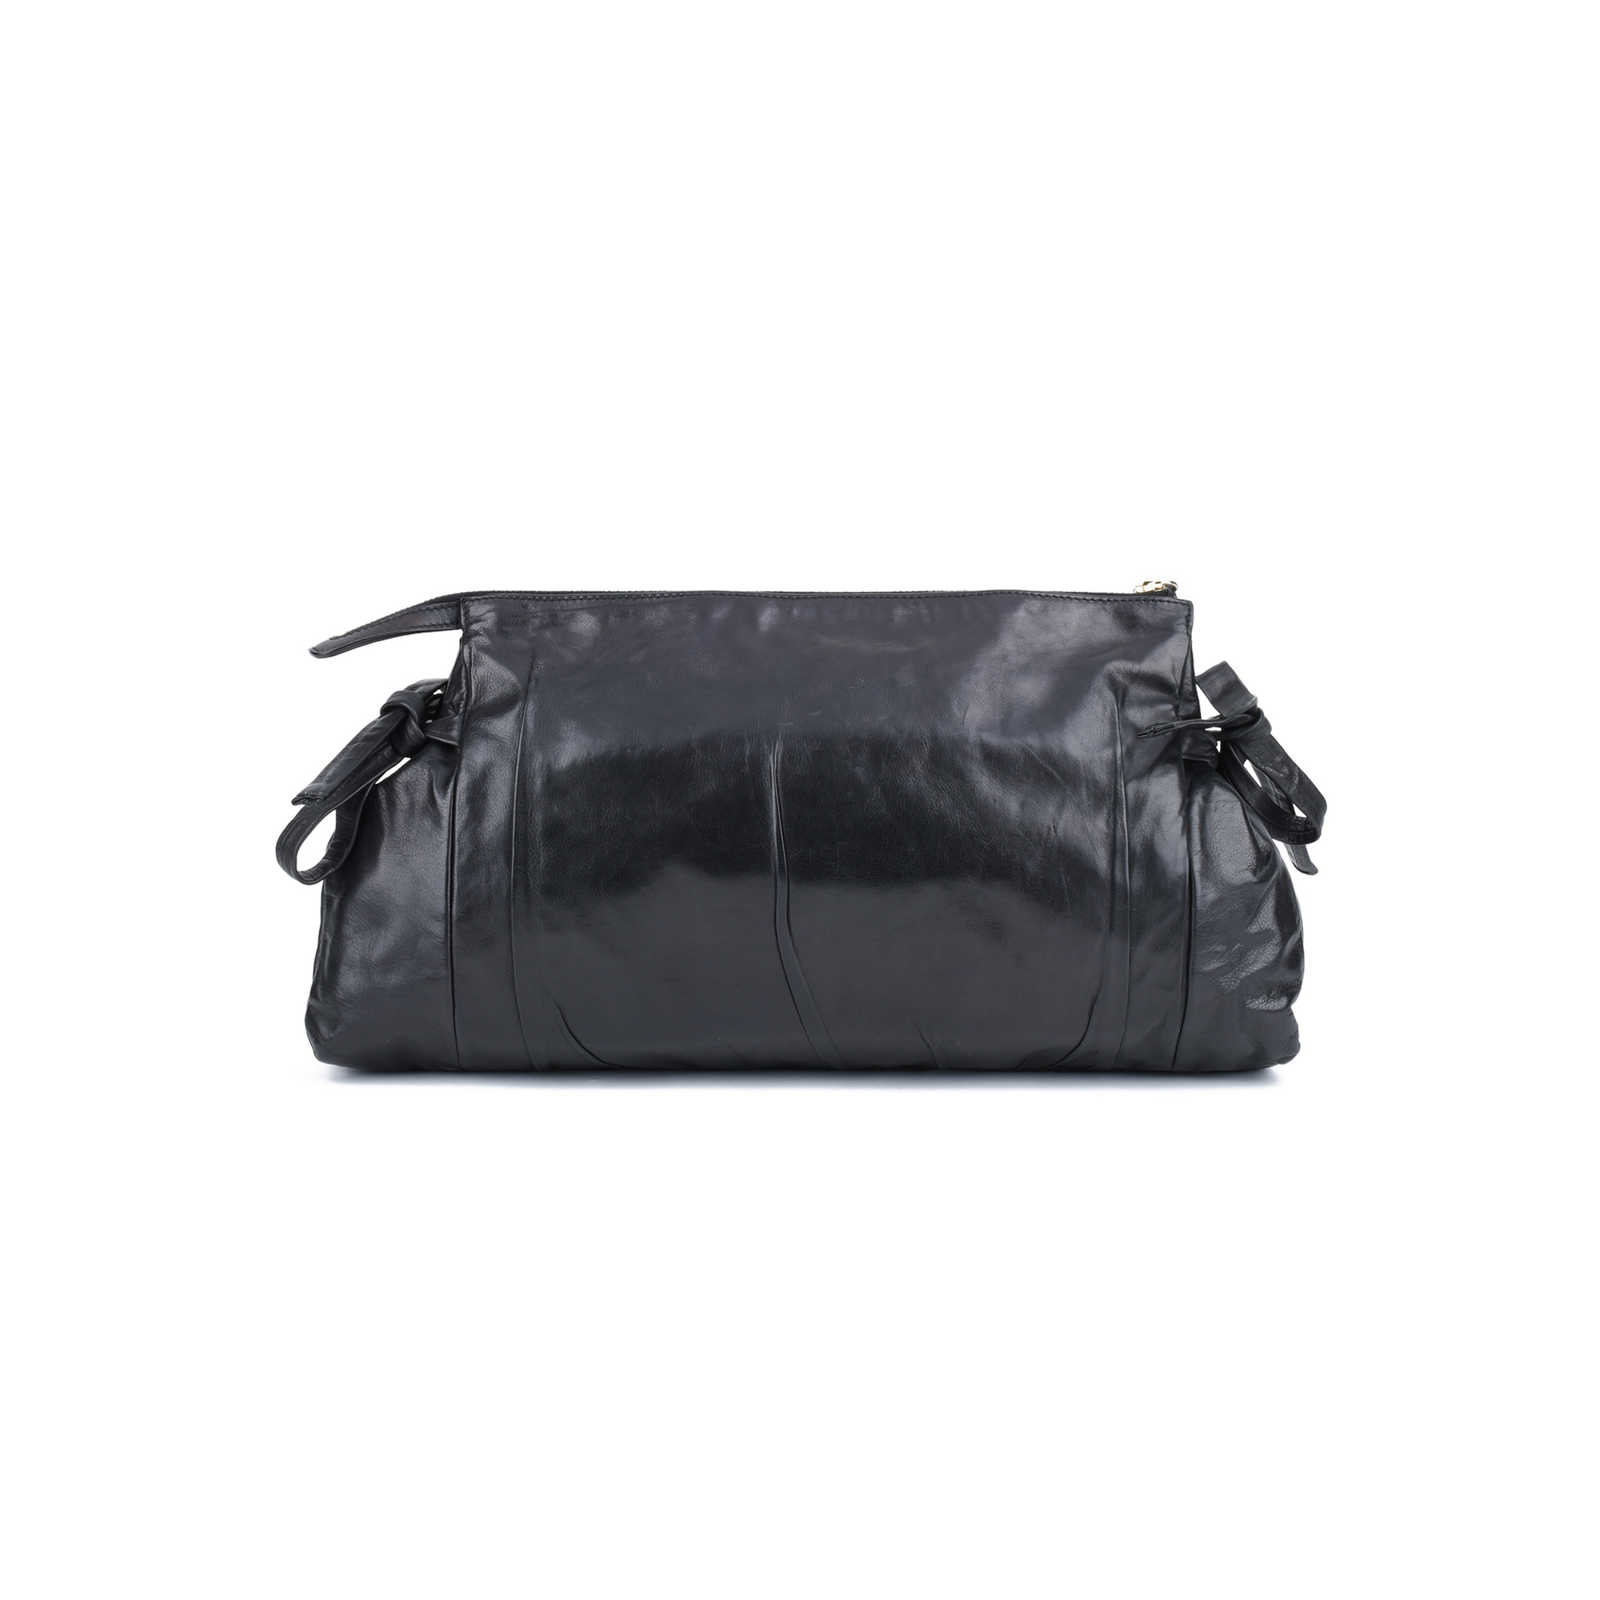 4c8c8d880fa ... Authentic Second Hand Gucci Hysteria Clutch Bag (PSS-420-00011) -  Thumbnail ...